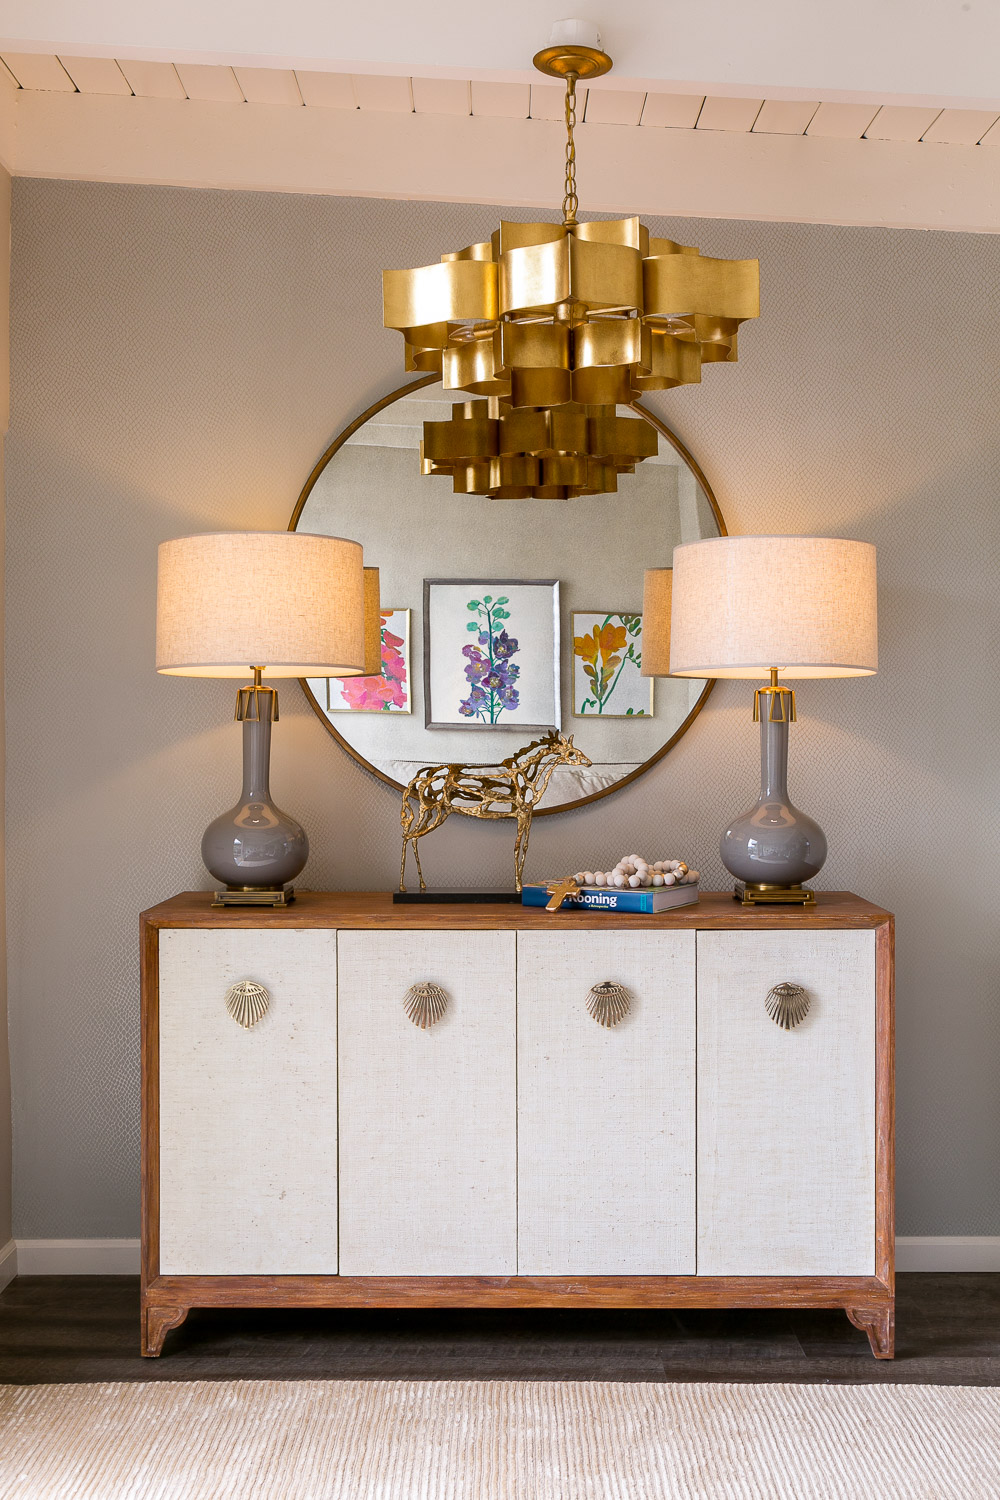 Photography by  Kathryn Macdonald  Design by Price Style and Design